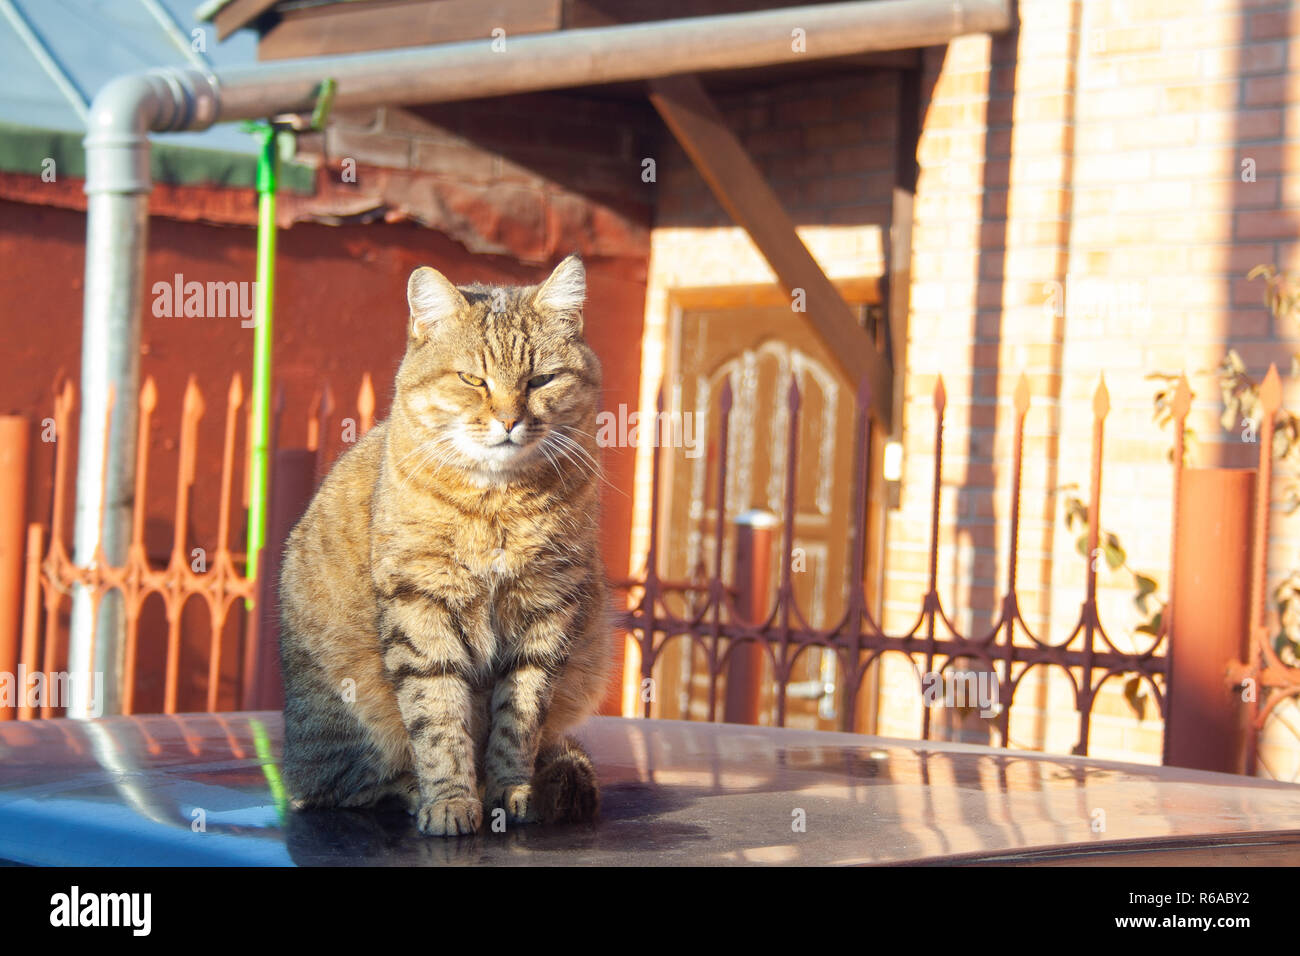 A big fluffy tabby cat sits on the roof of a car on a sunny autumn day. - Stock Image